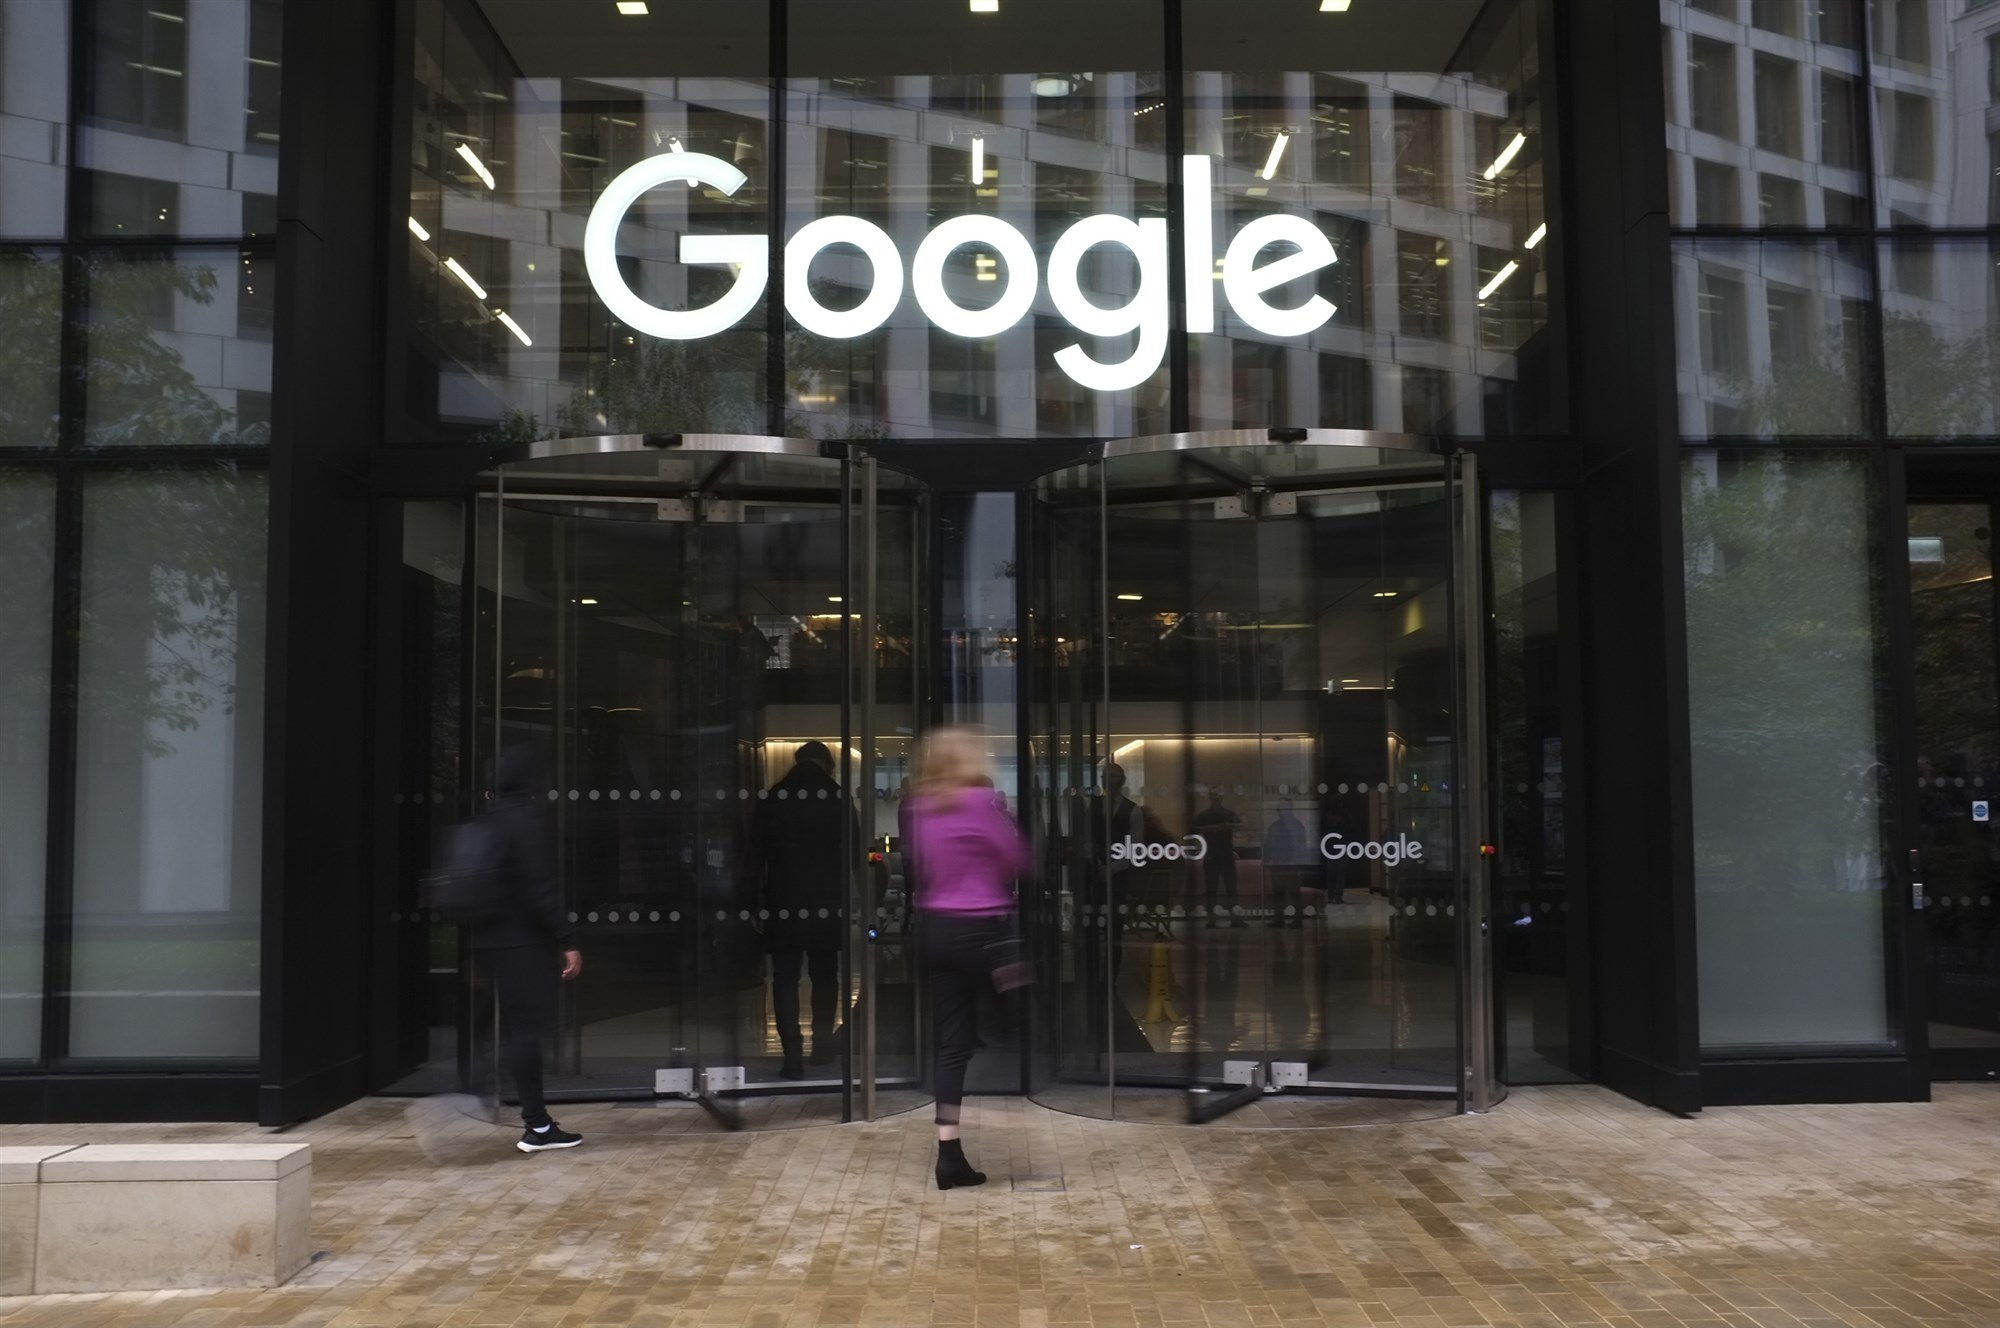 EVIL Google bans website ZeroHedge from its ad platform over comments on protest articles